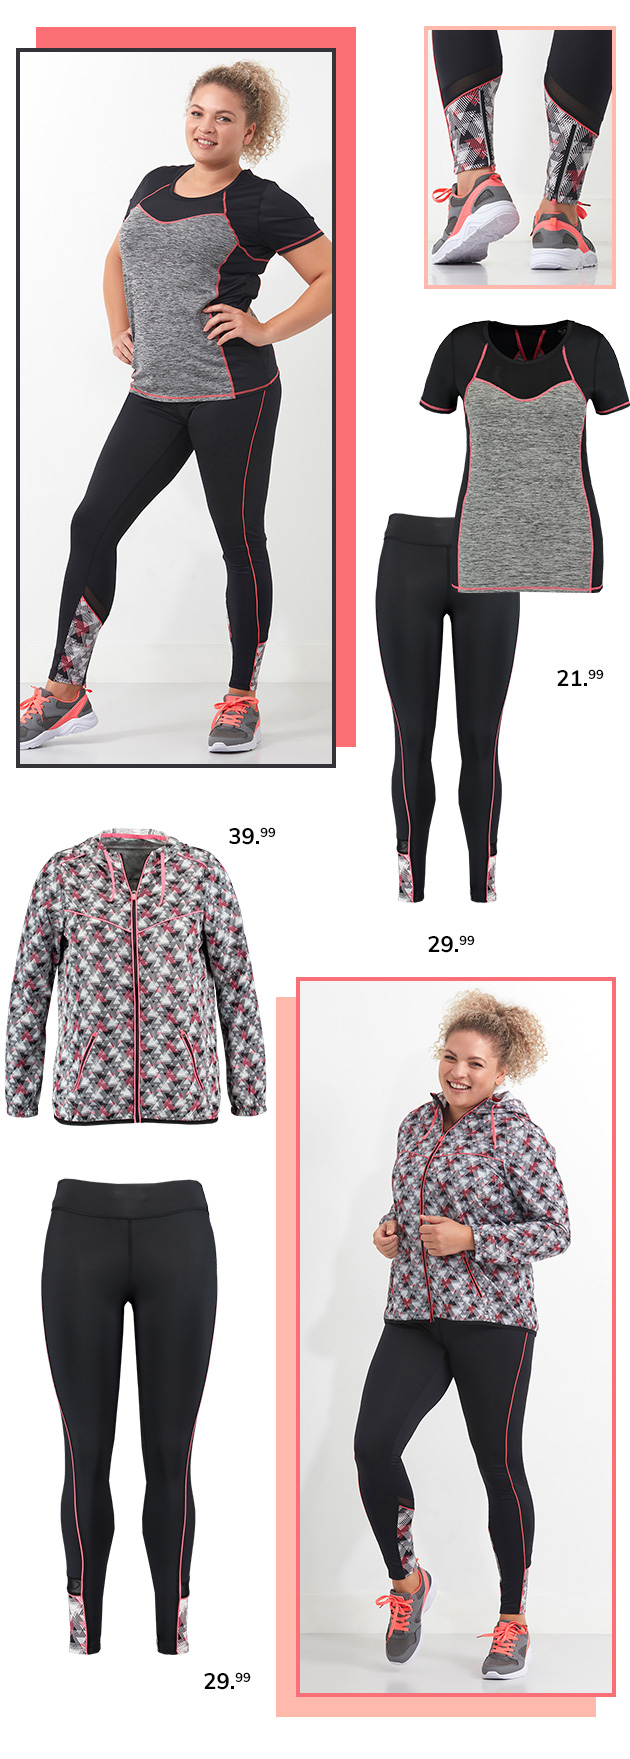 ms mode active wear 6 - Plussize Fashion | MS Mode Active Wear